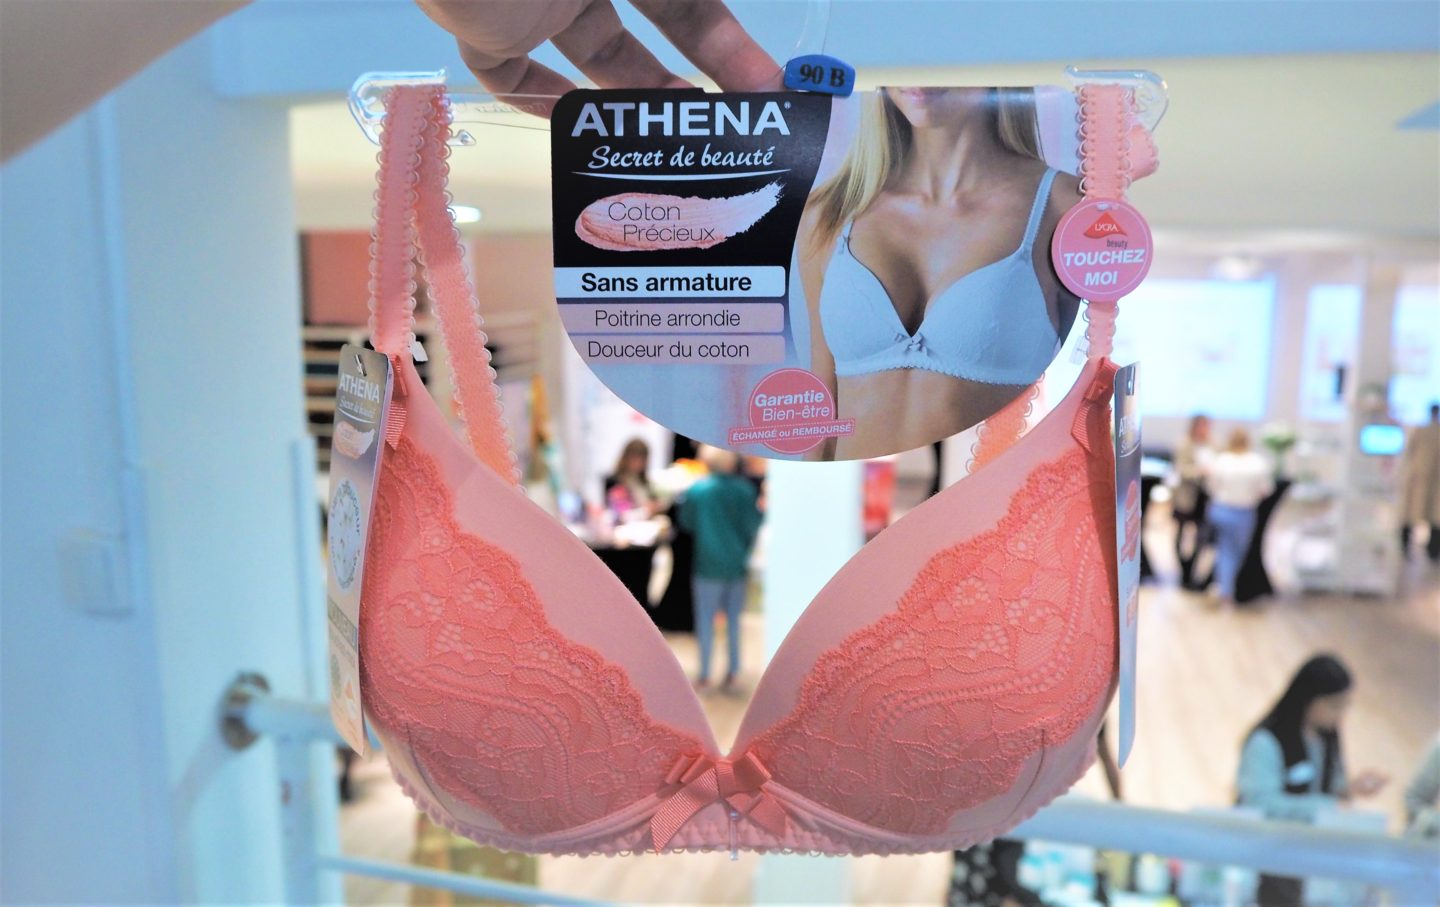 Athena secret de beaute